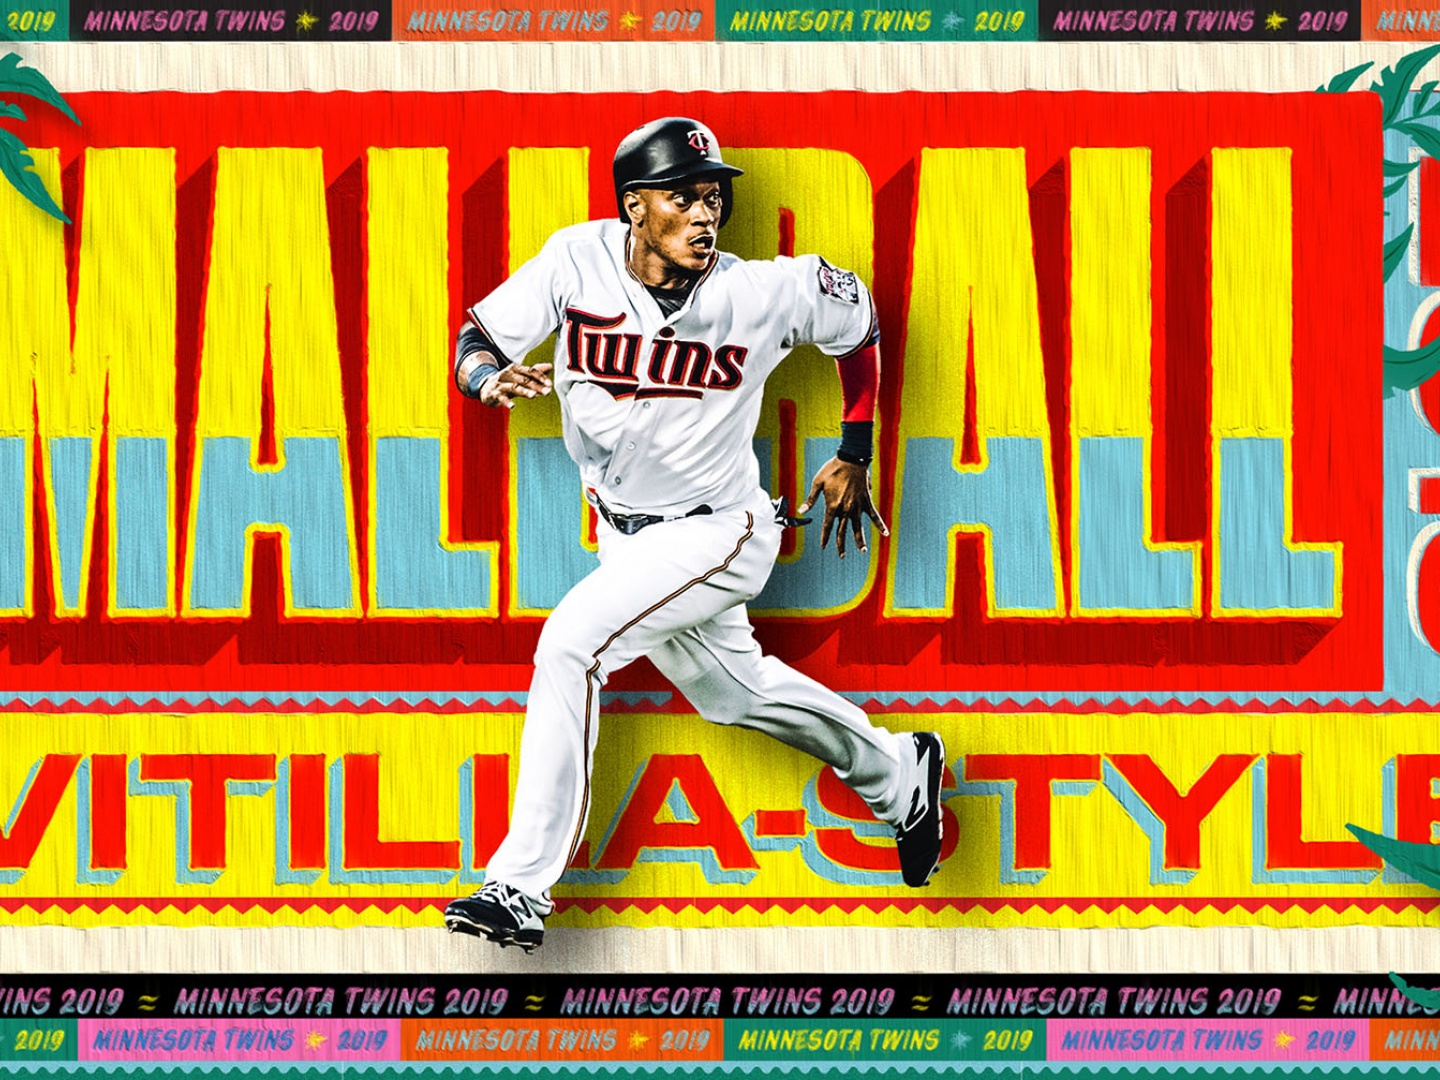 Minnesota Twins Mall Ball: Vitilla-Style Thumbnail